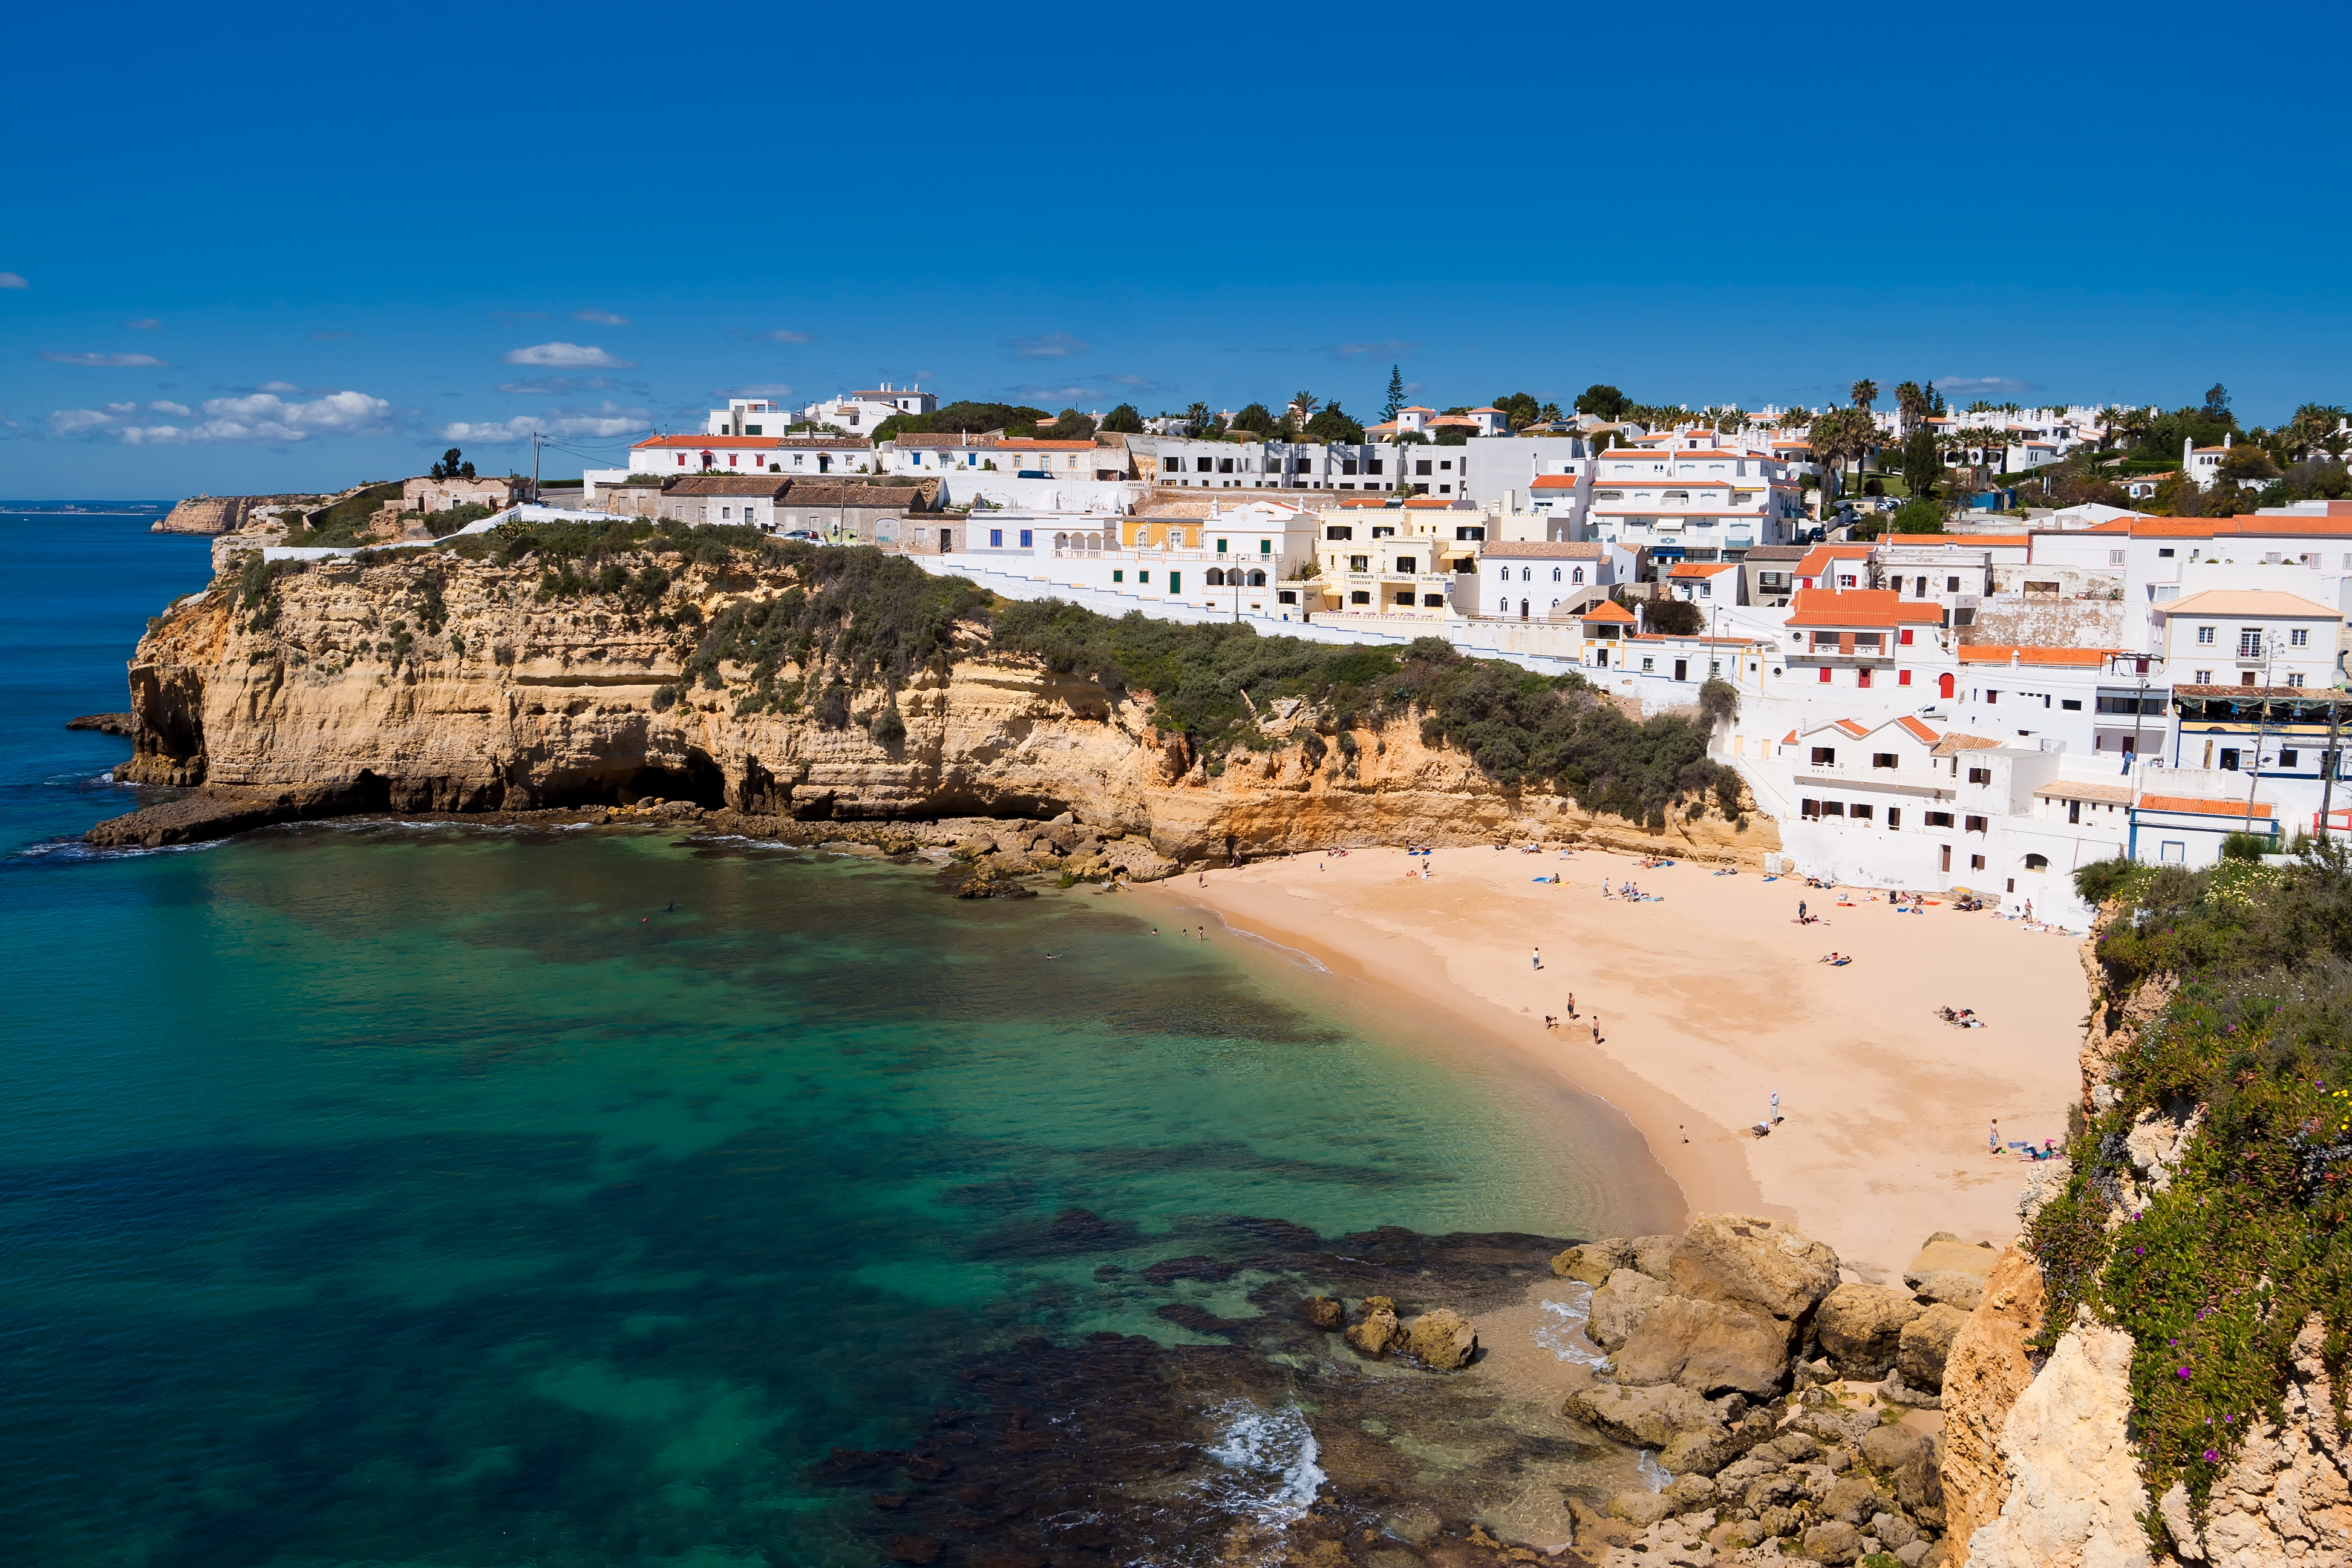 Property prices in Portugal rocketing